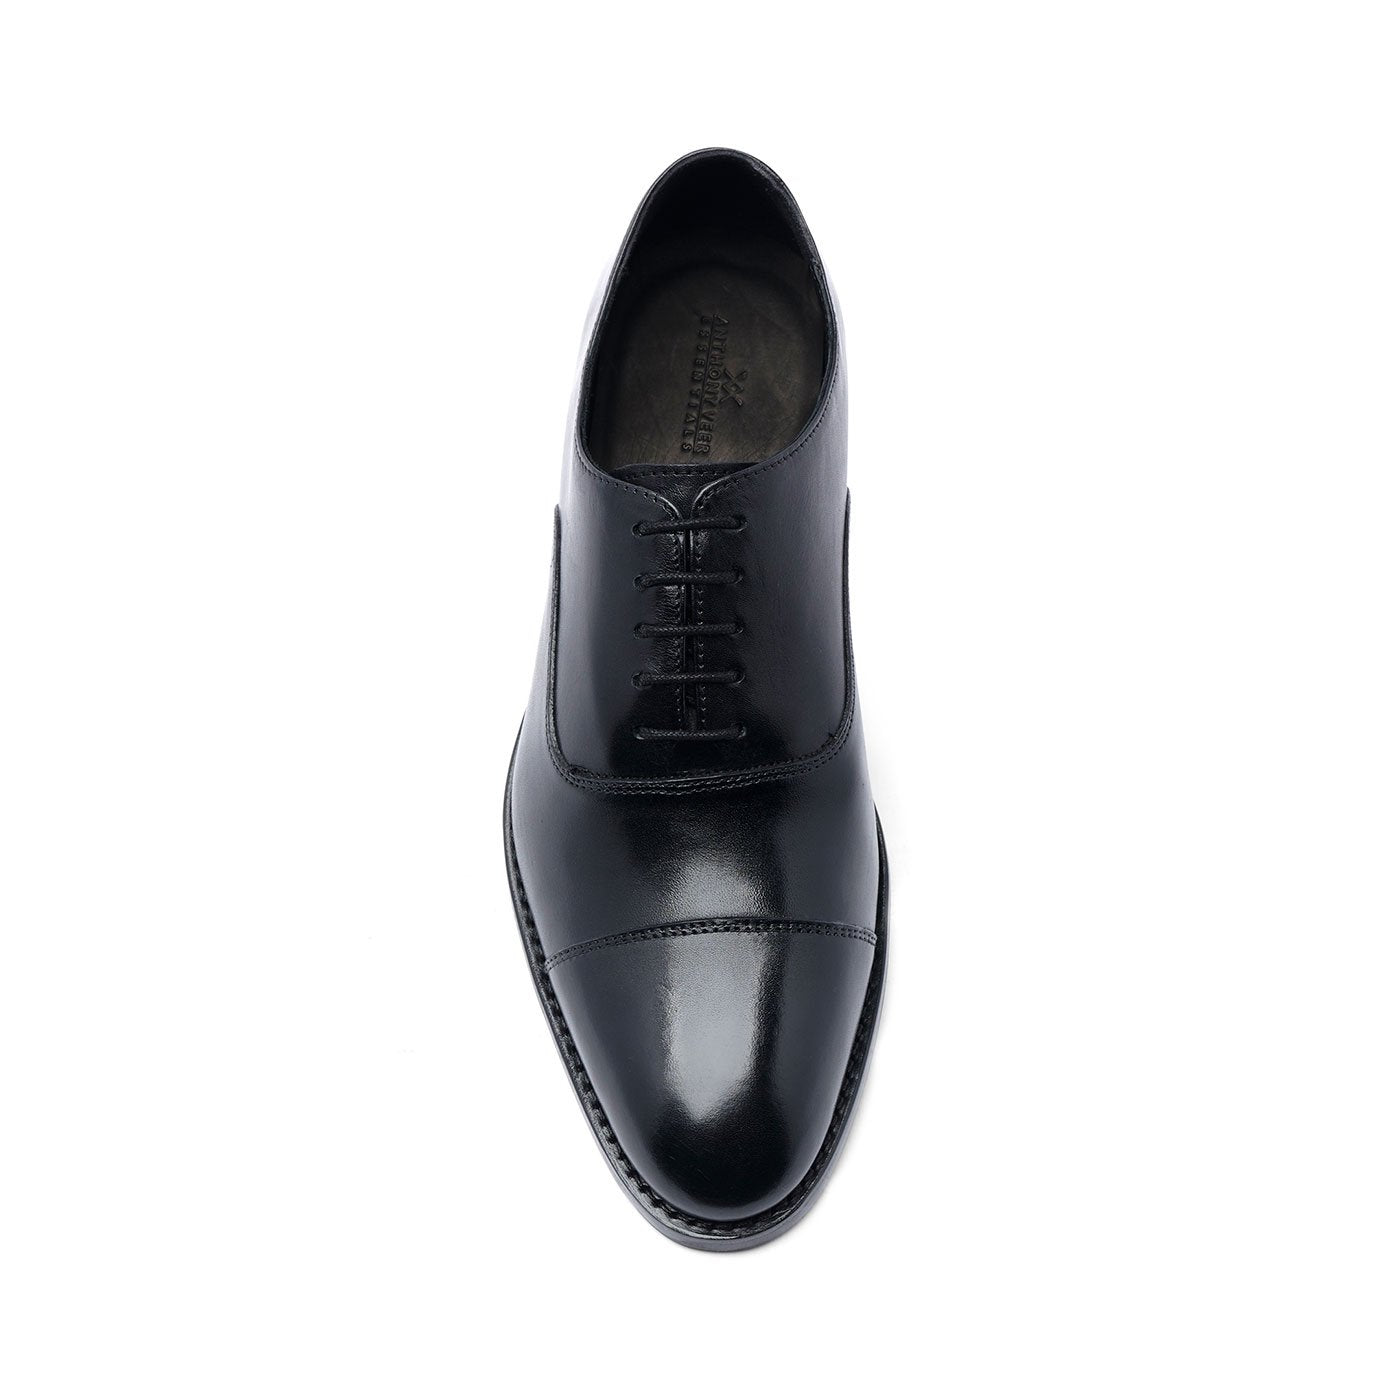 Clinton Cap Toe Oxford, Rubber Sole Black